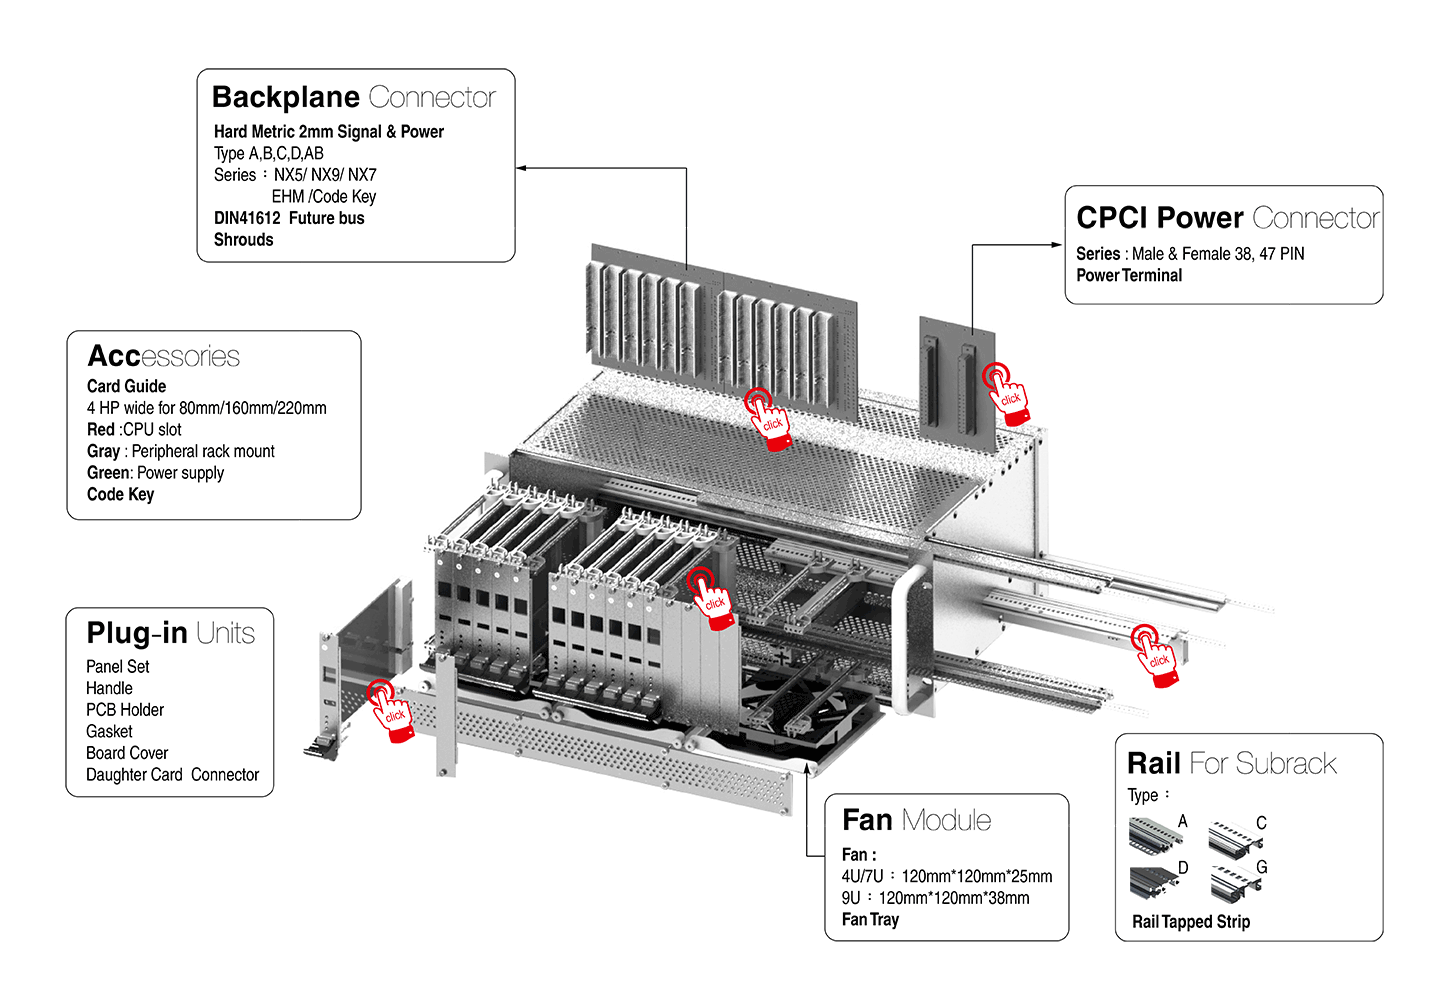 Backplane Connector Amp Accessories